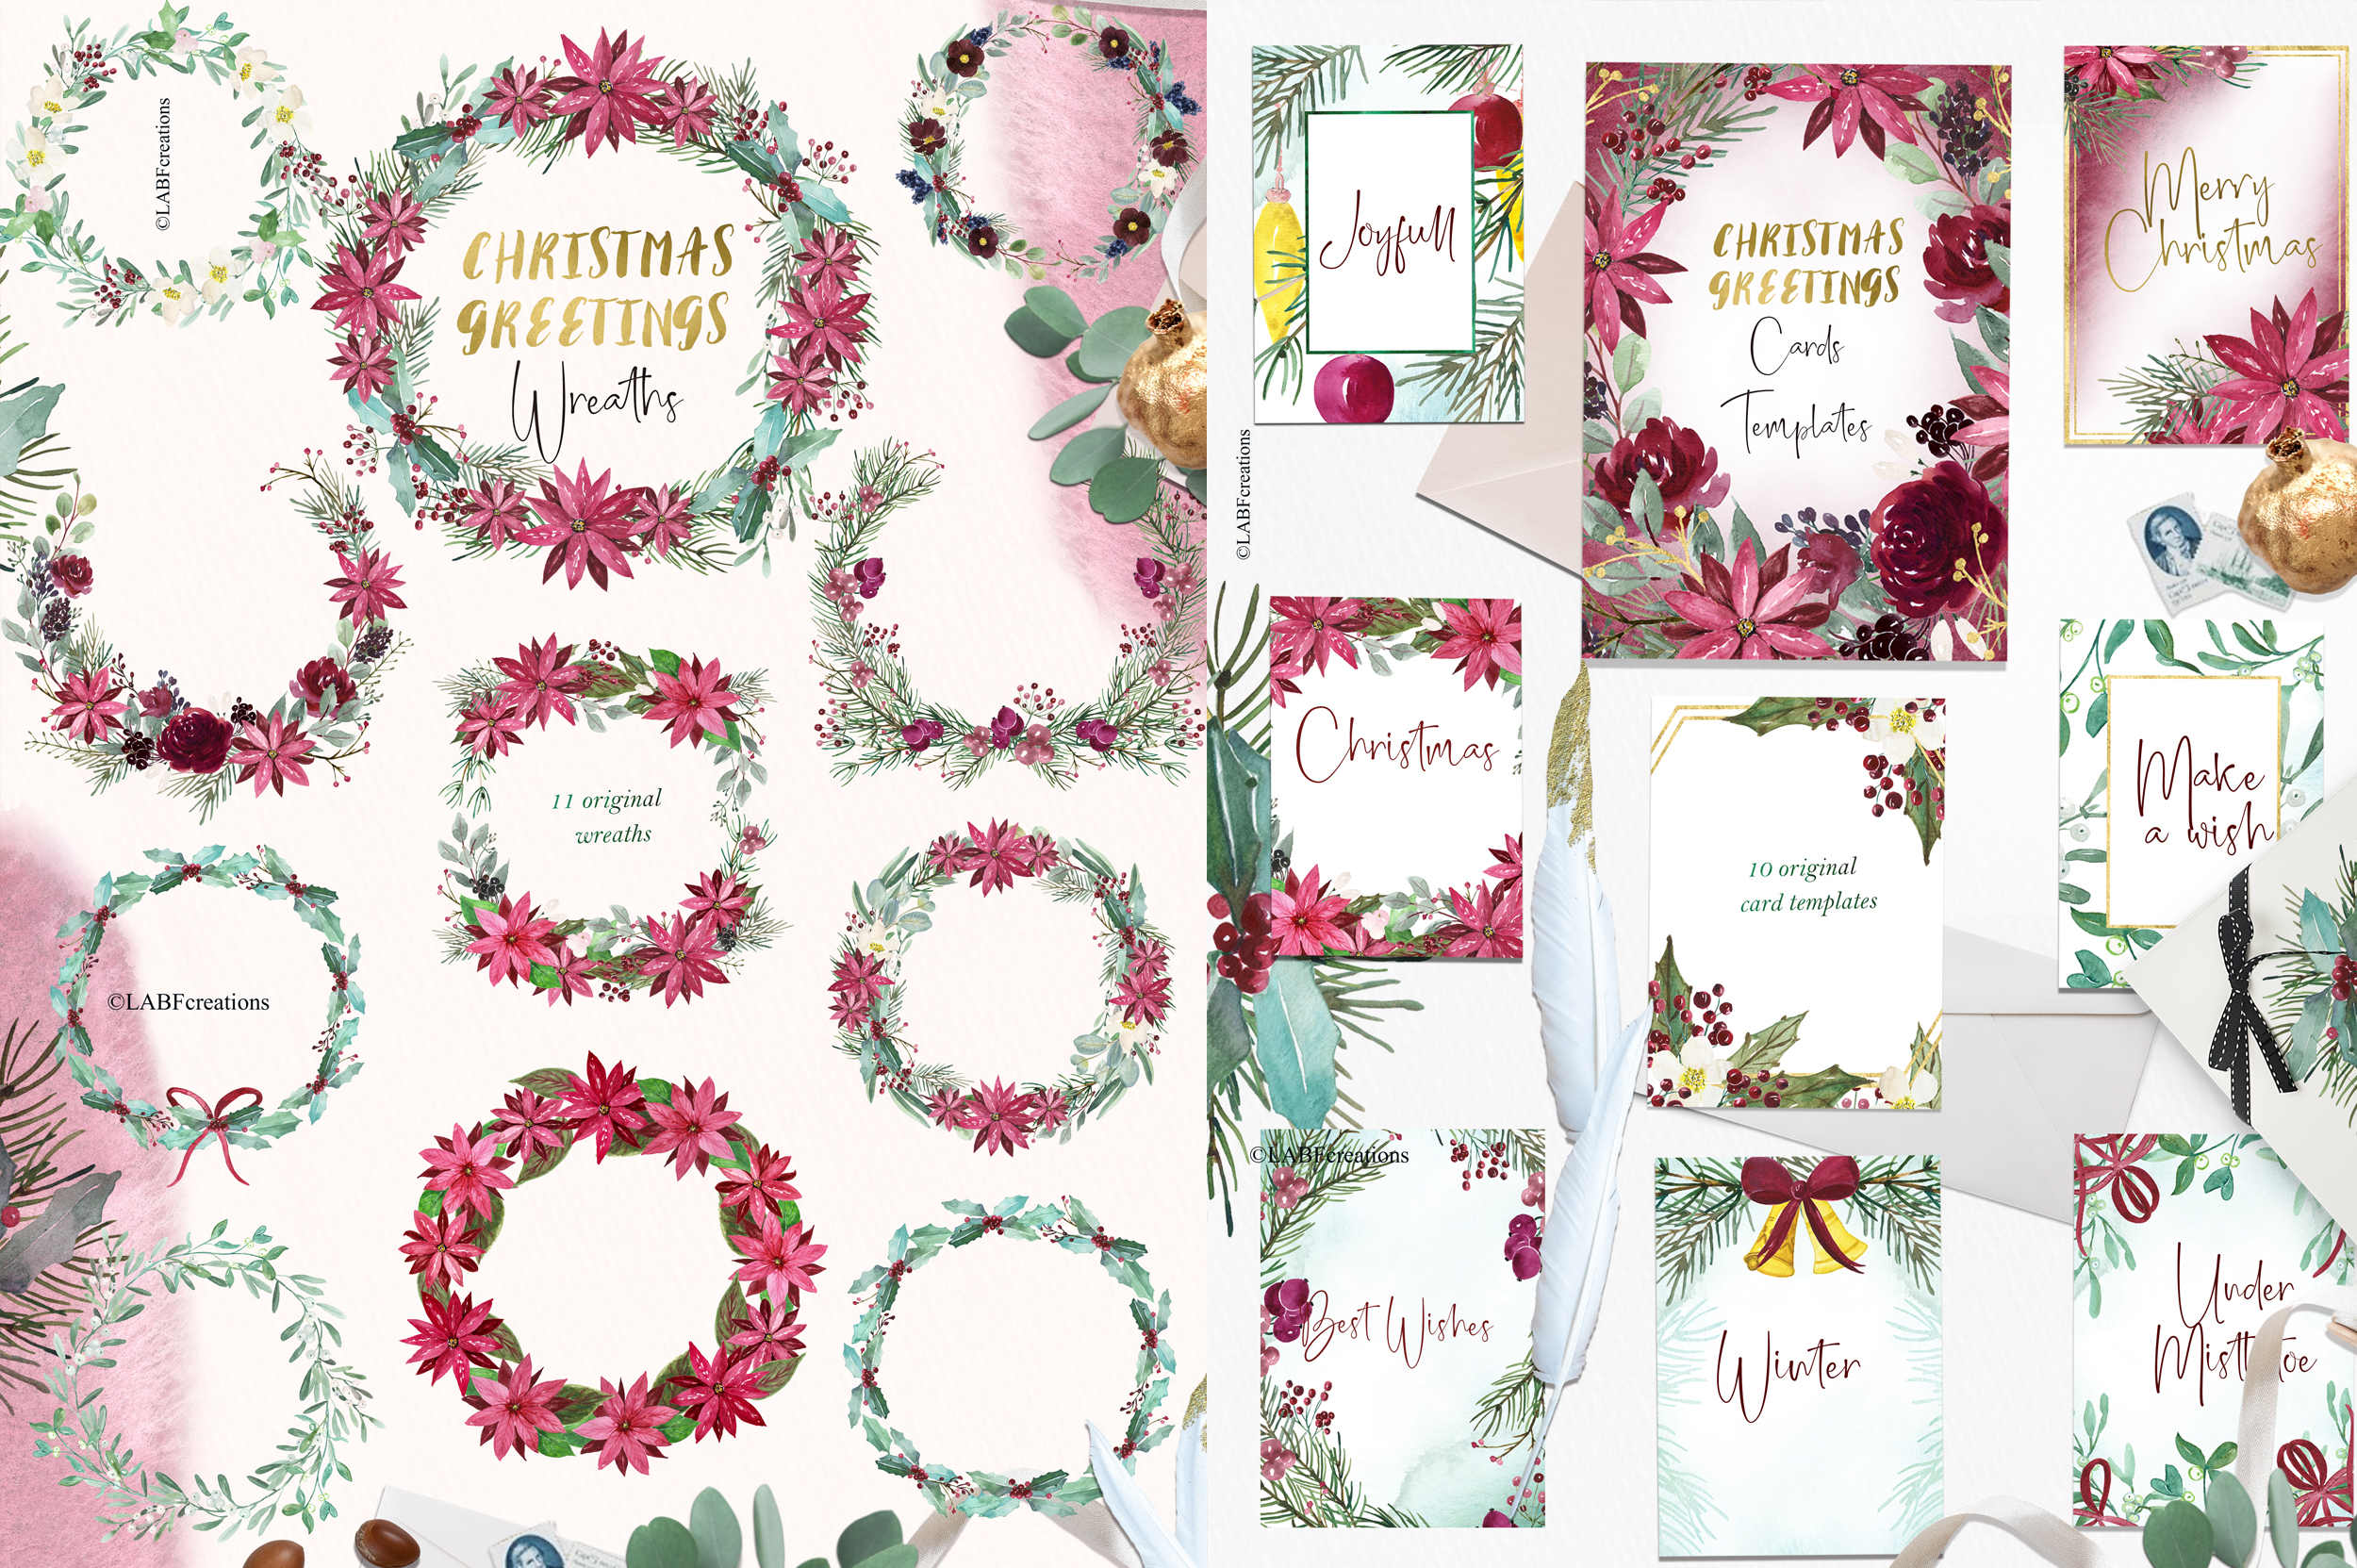 Christmas greetings. Hand drawn watercolor collection. example image 1